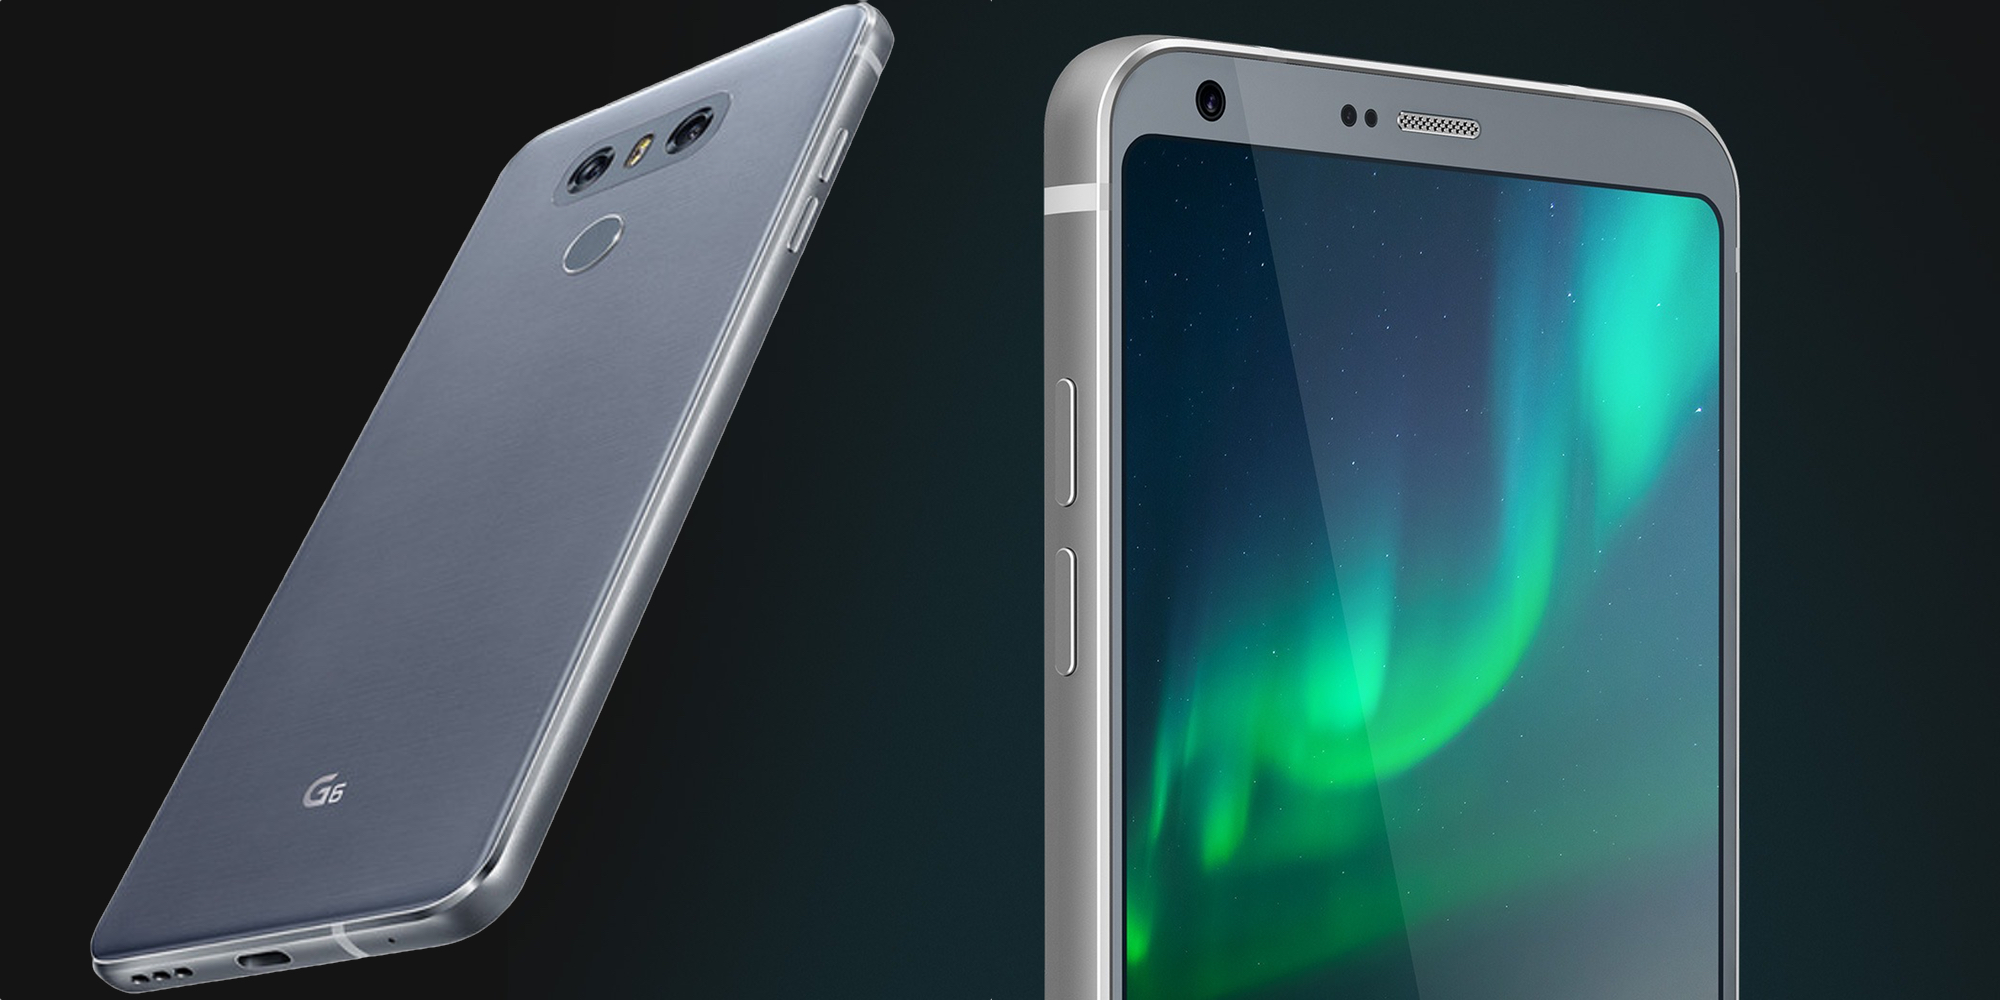 Today only, score the unlocked LG G6 Android Smartphone for $250 (Reg. $400)